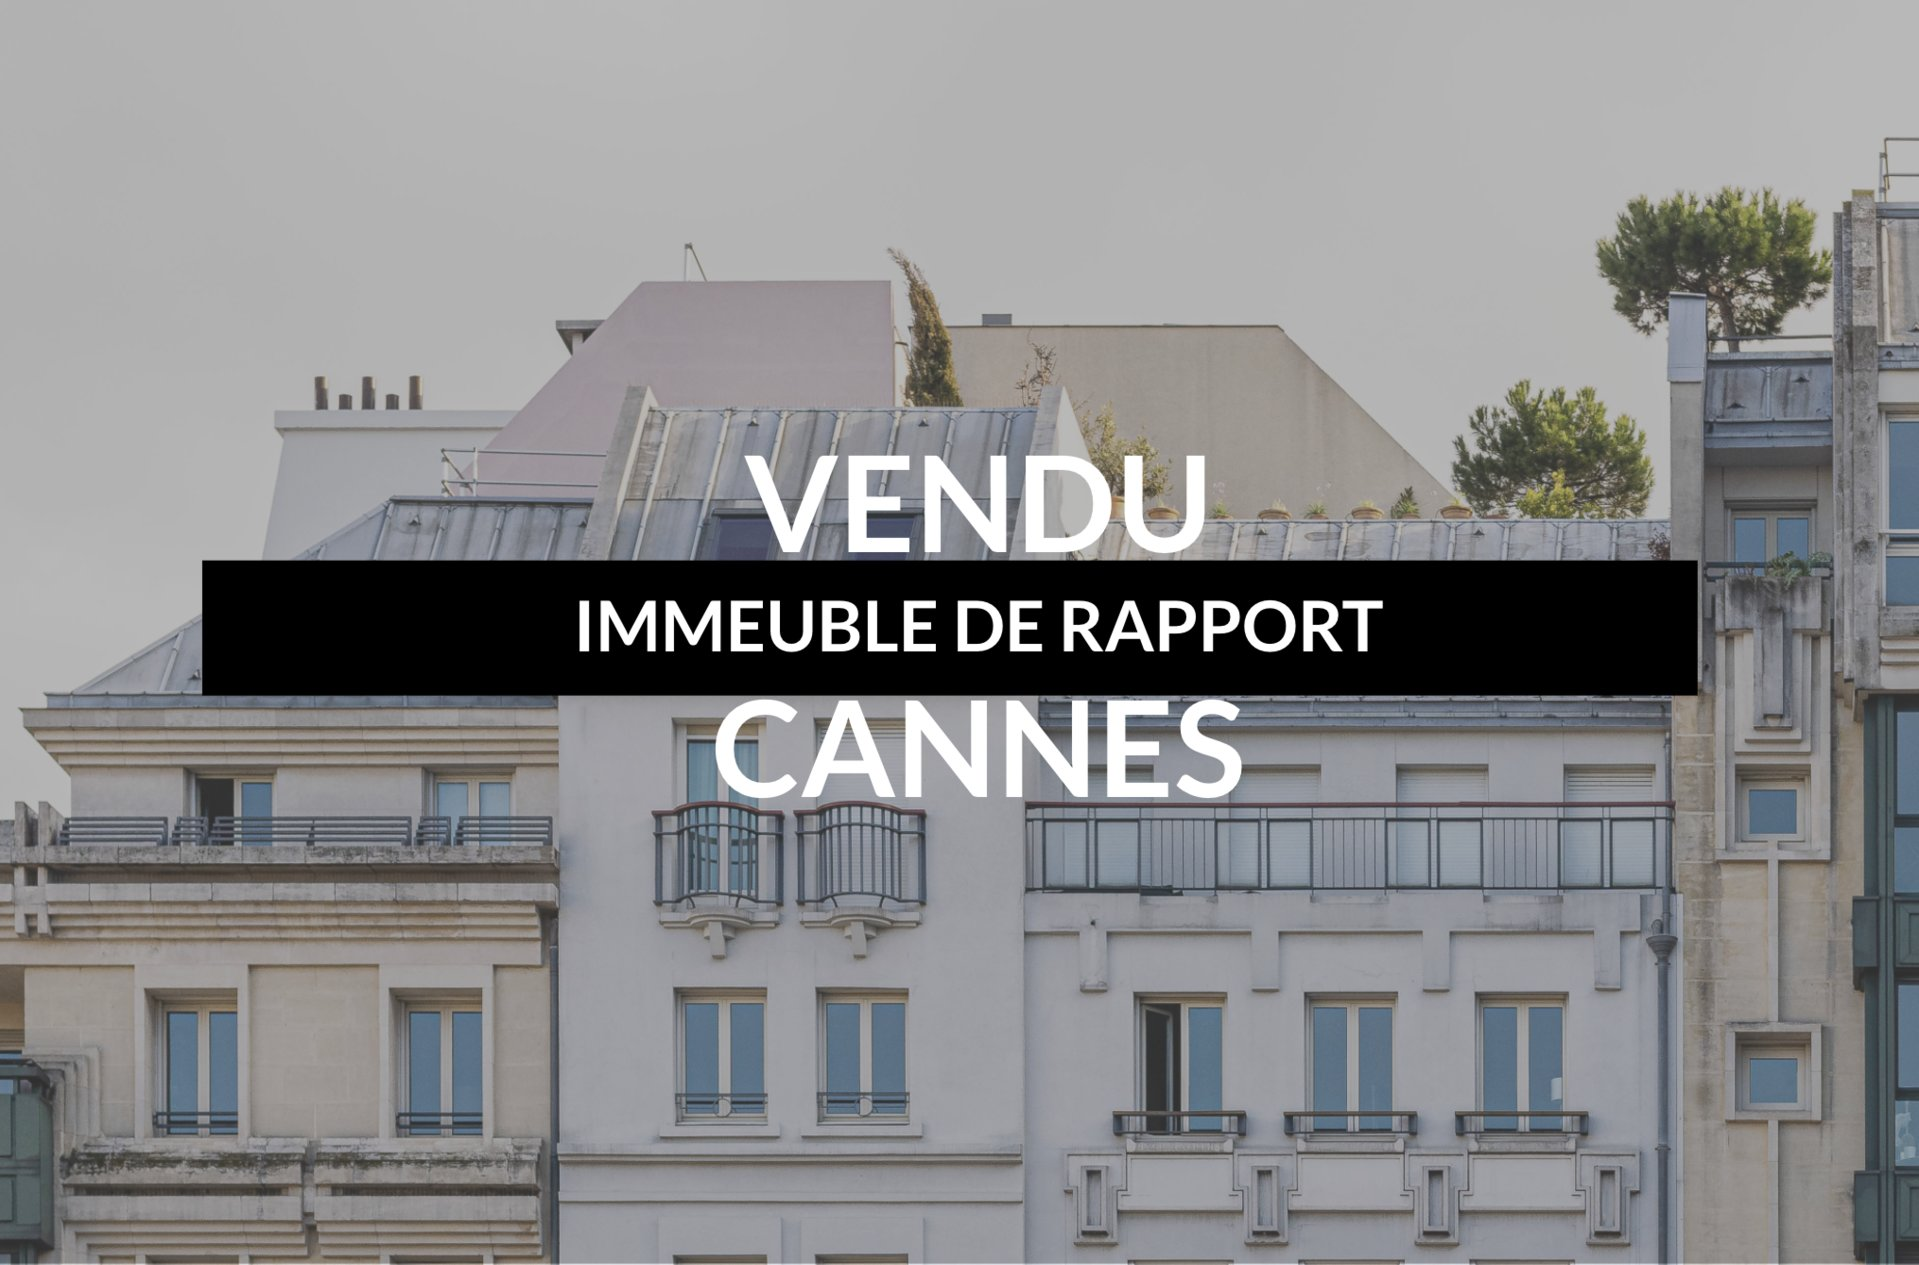 BUILDING IN CANNES